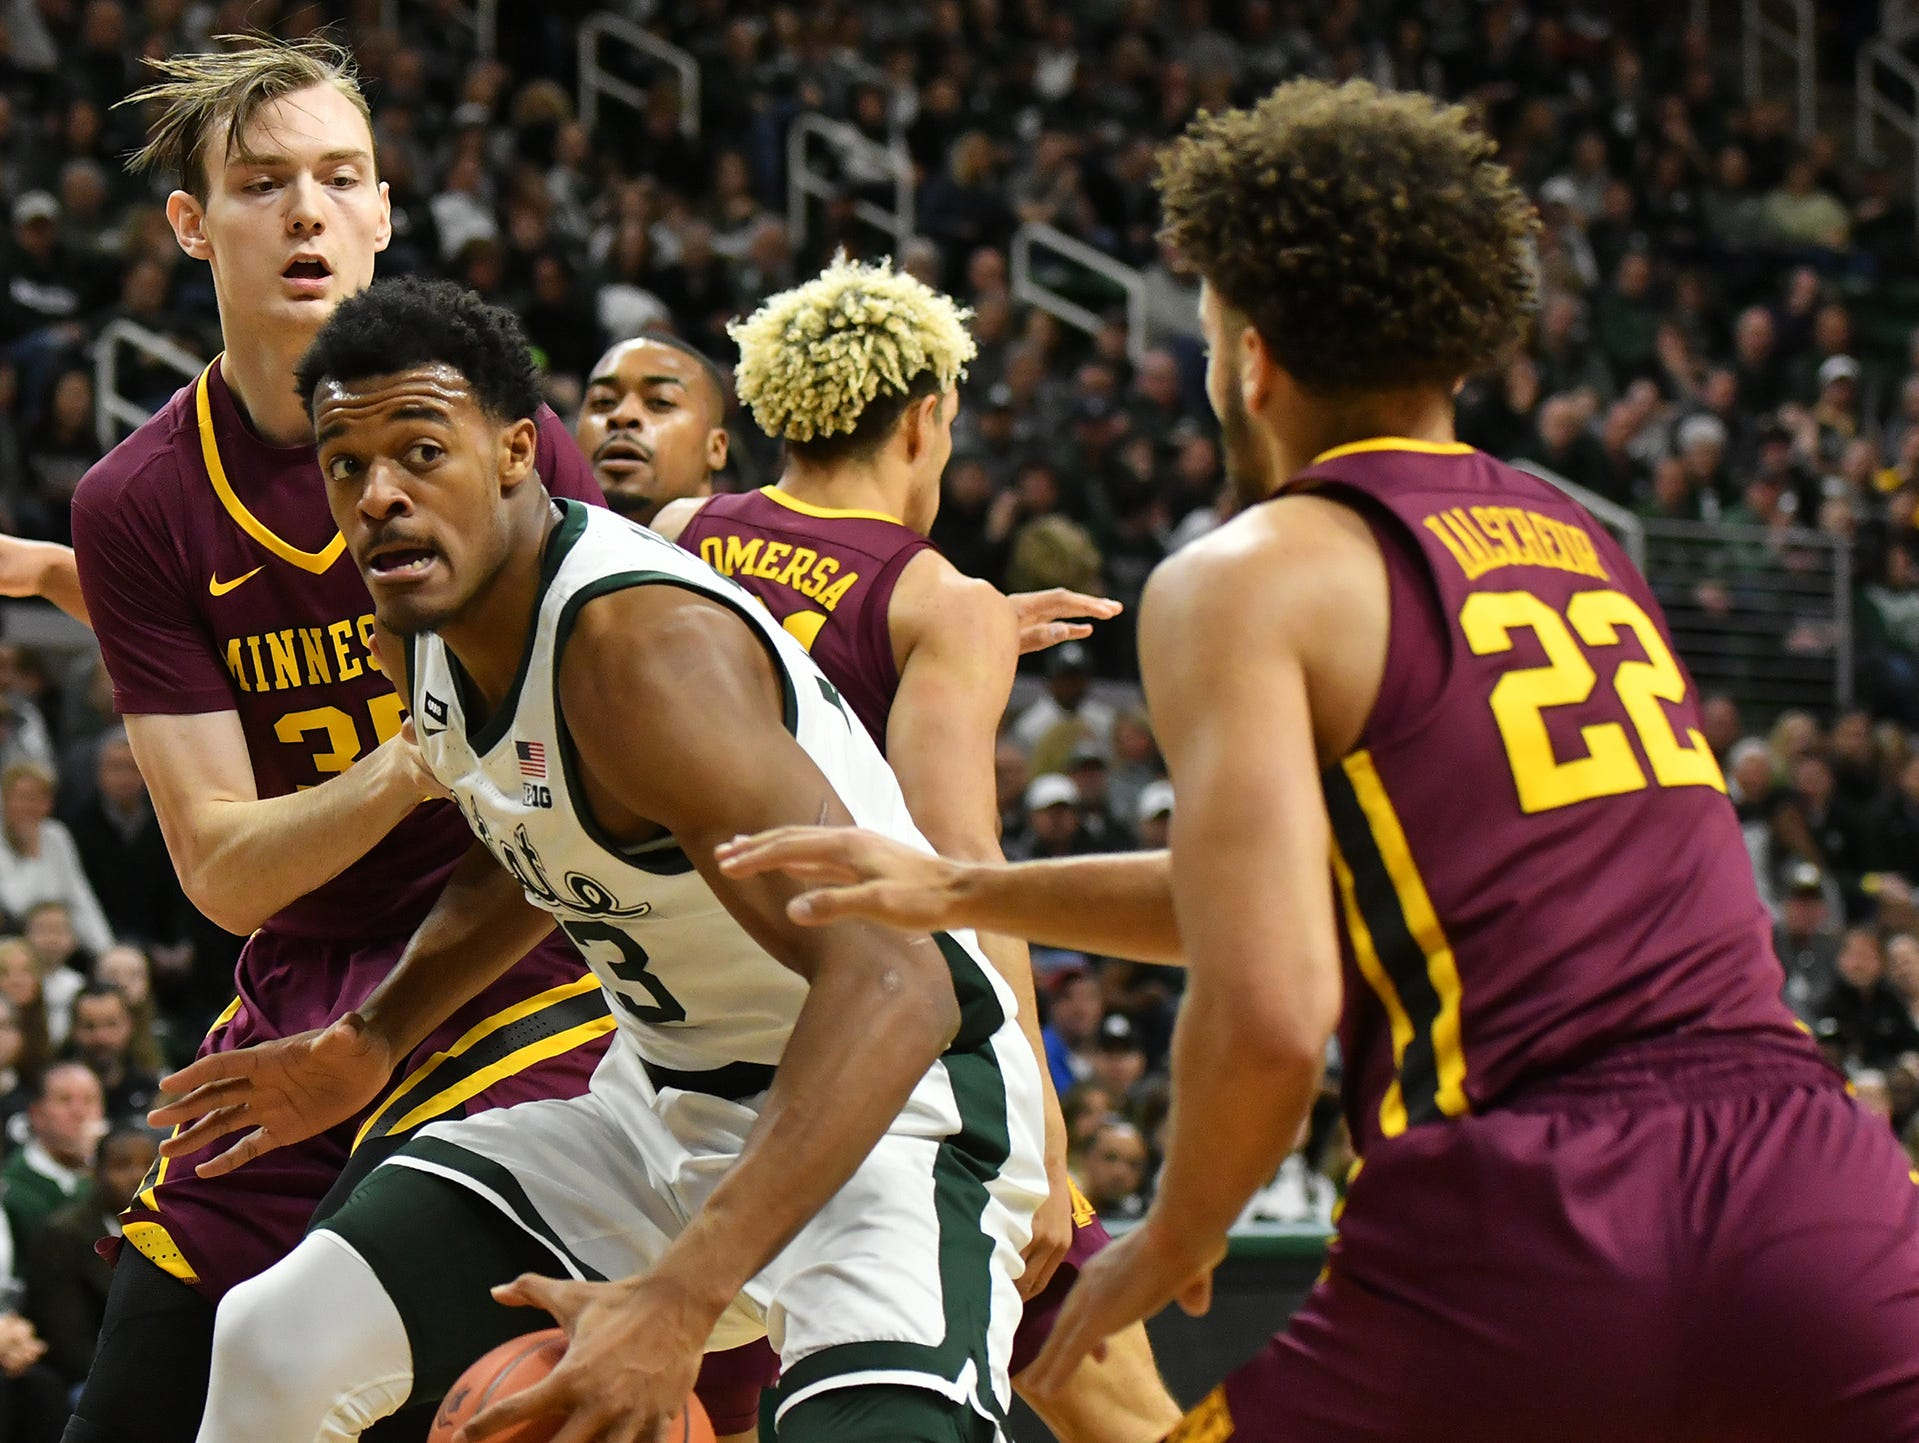 MSU's Xavier Tillman (23) works the ball in against Minnesota's Gabe Kalscheur, (22) at the Breslin Center, Saturday, Feb. 9, 2019.